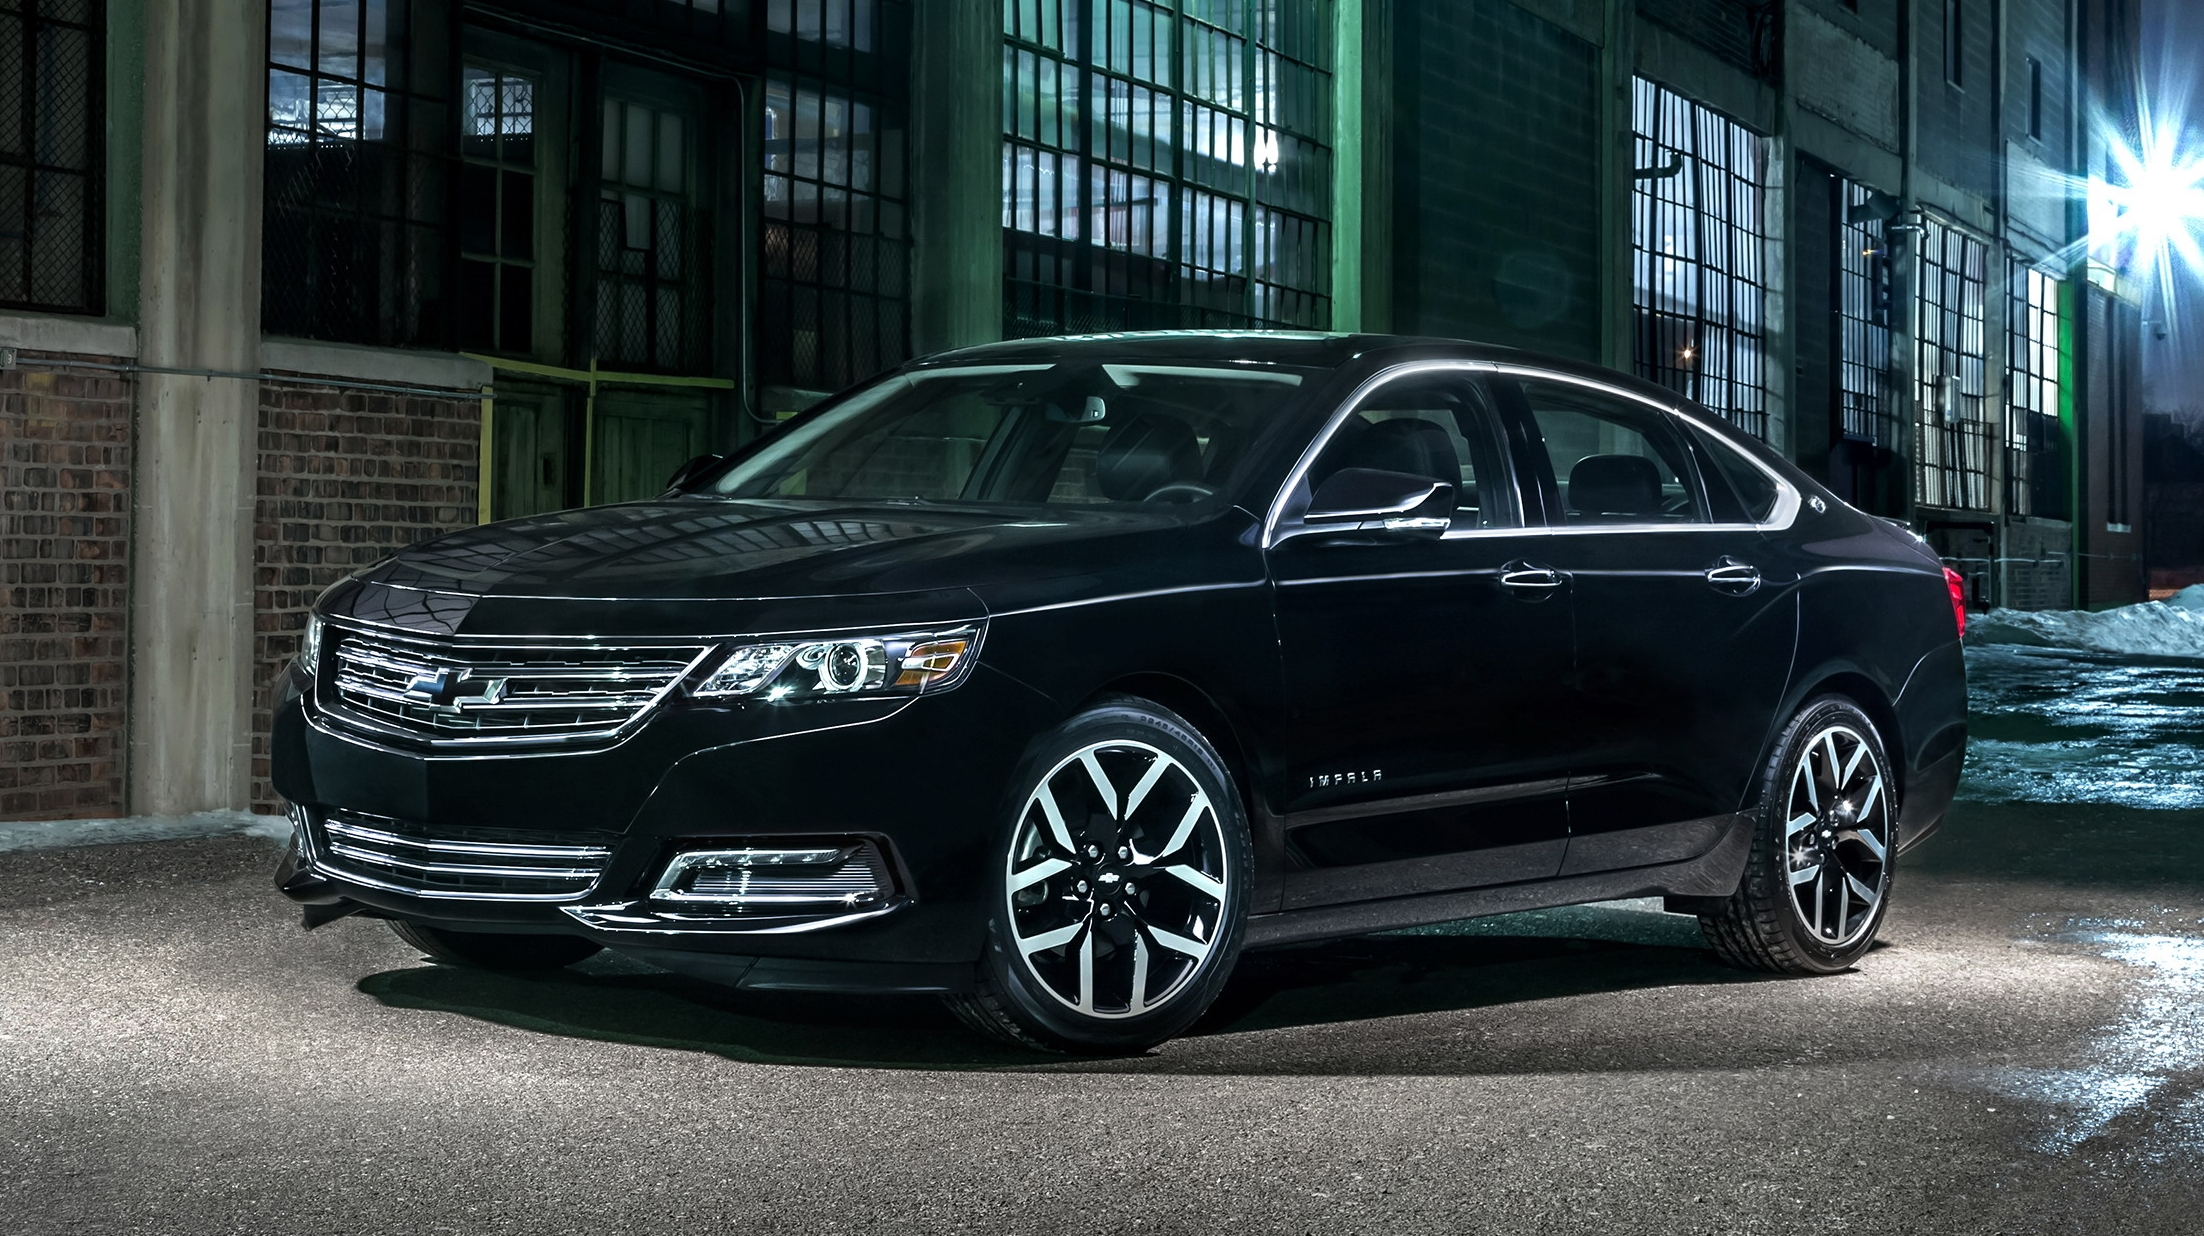 2016 Chevrolet Impala Midnight Edition | Top Speed